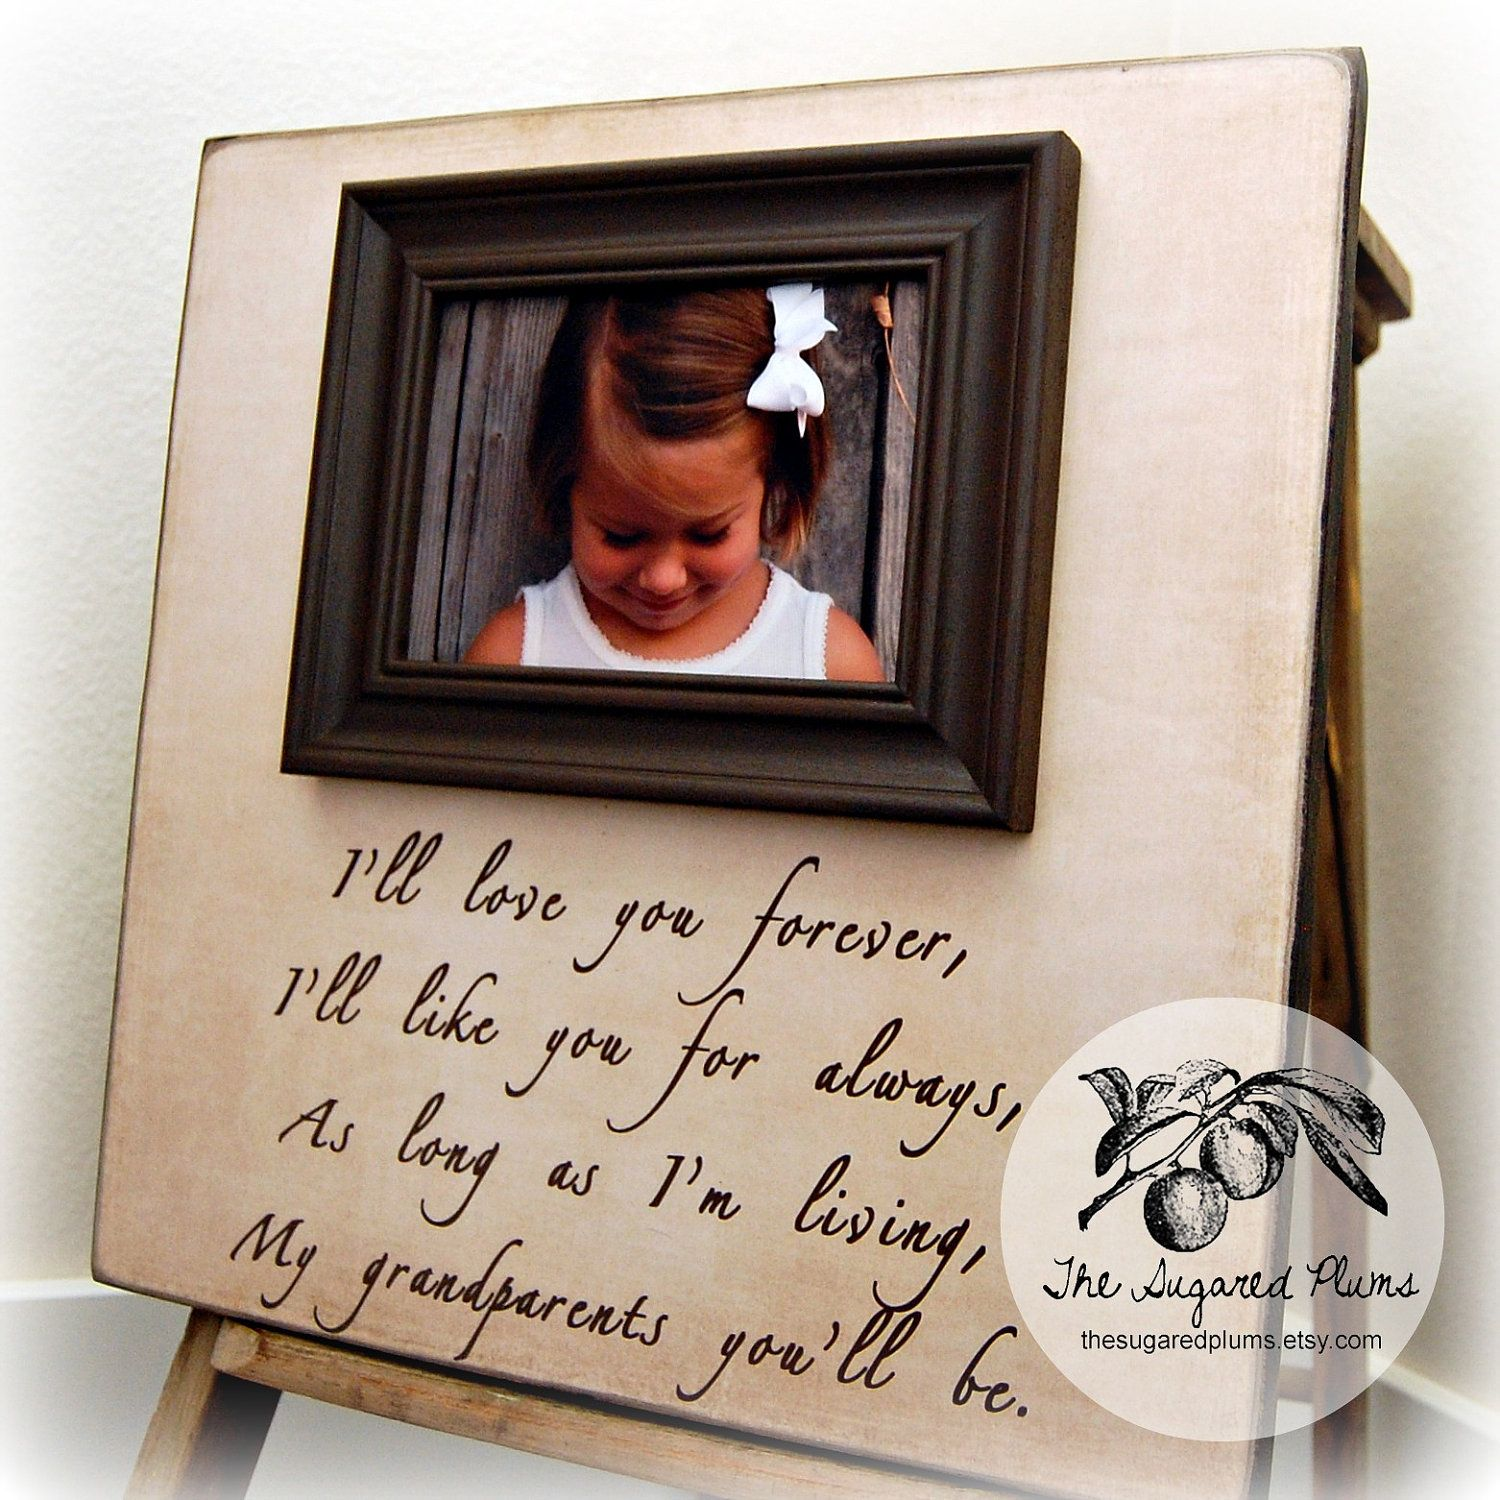 Grandparents gifts grandma gift mothers day gift fathers day gift grandparents gift picture frame fathers day dad grandfather grandchild papa appreciation 16x16 personalized frame 7500 solutioingenieria Image collections